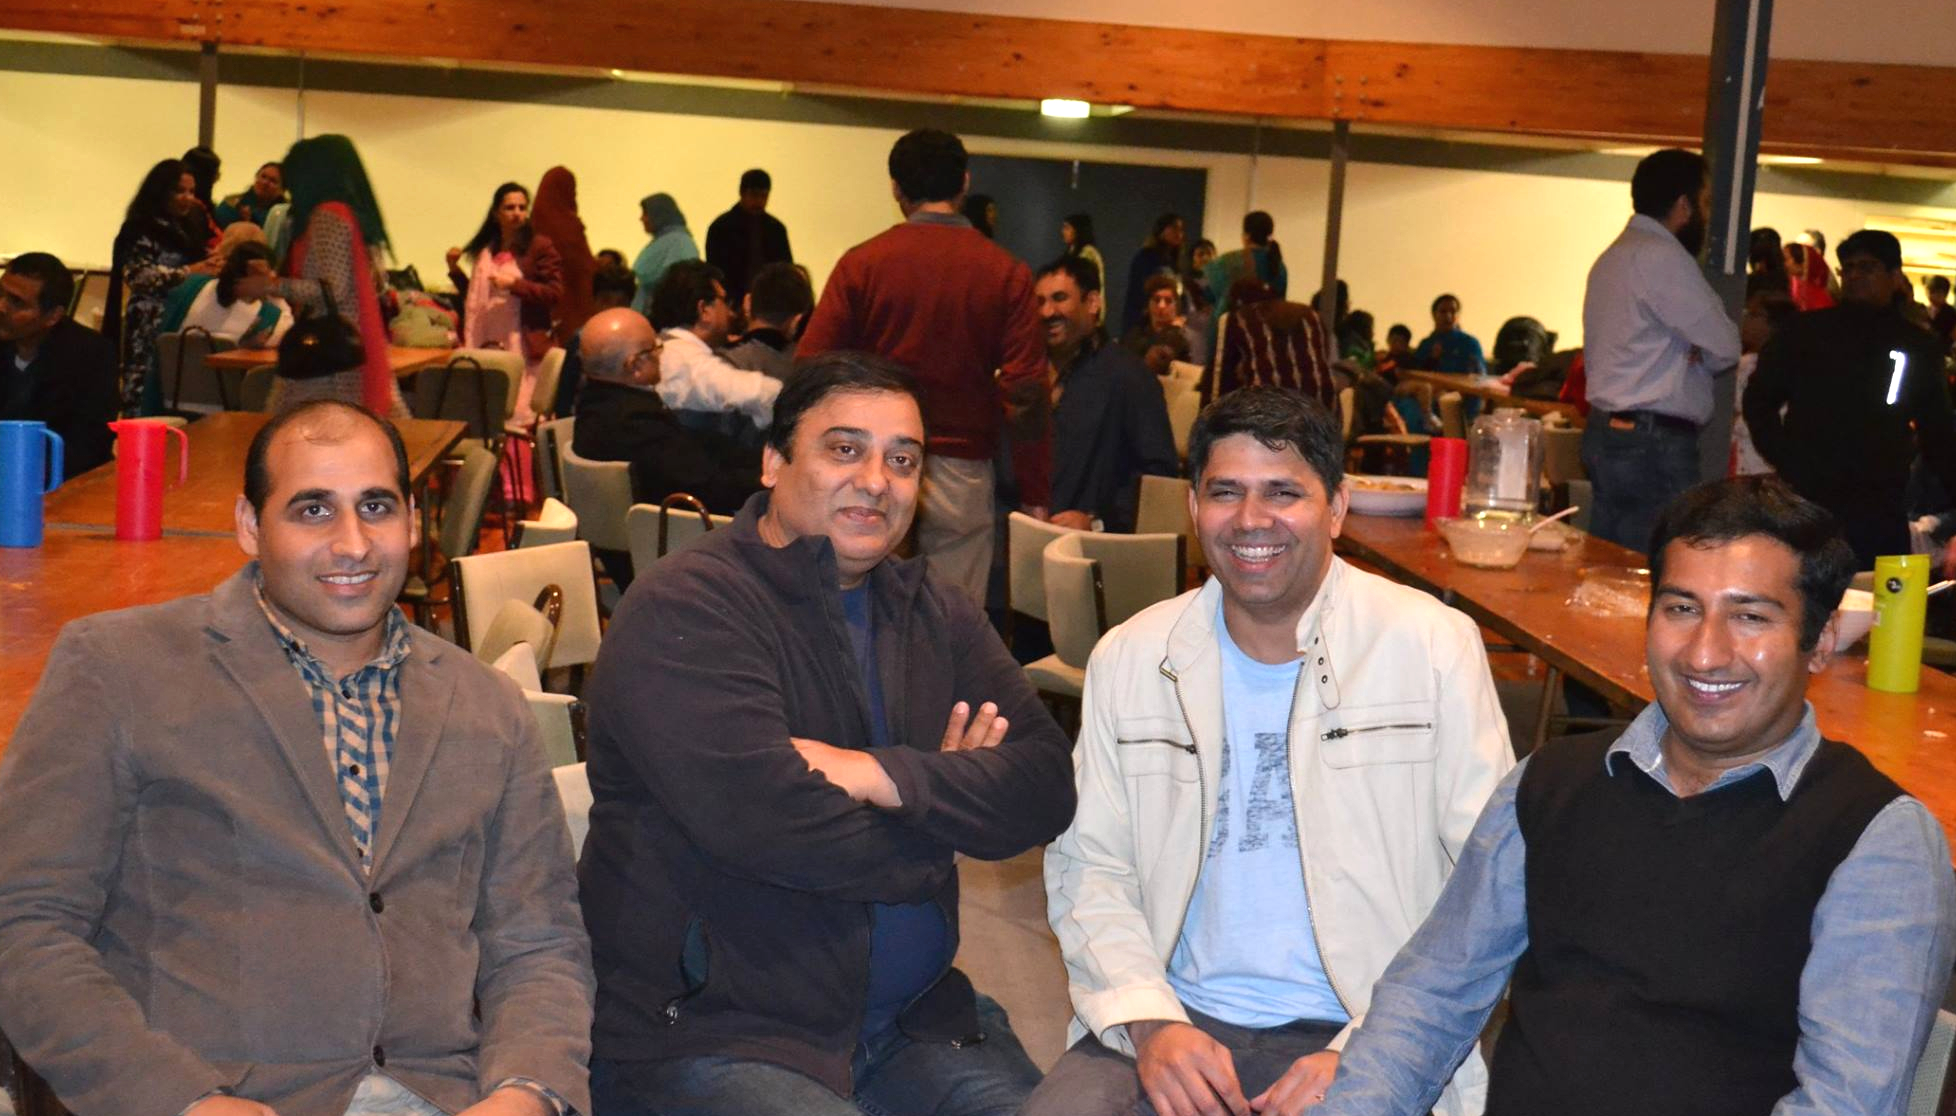 Members of the Pakistani Association of Canterbury NZ during the Eid celebrations held at the Canterbury Horticultural Centre, photo courtesy: PACNZ